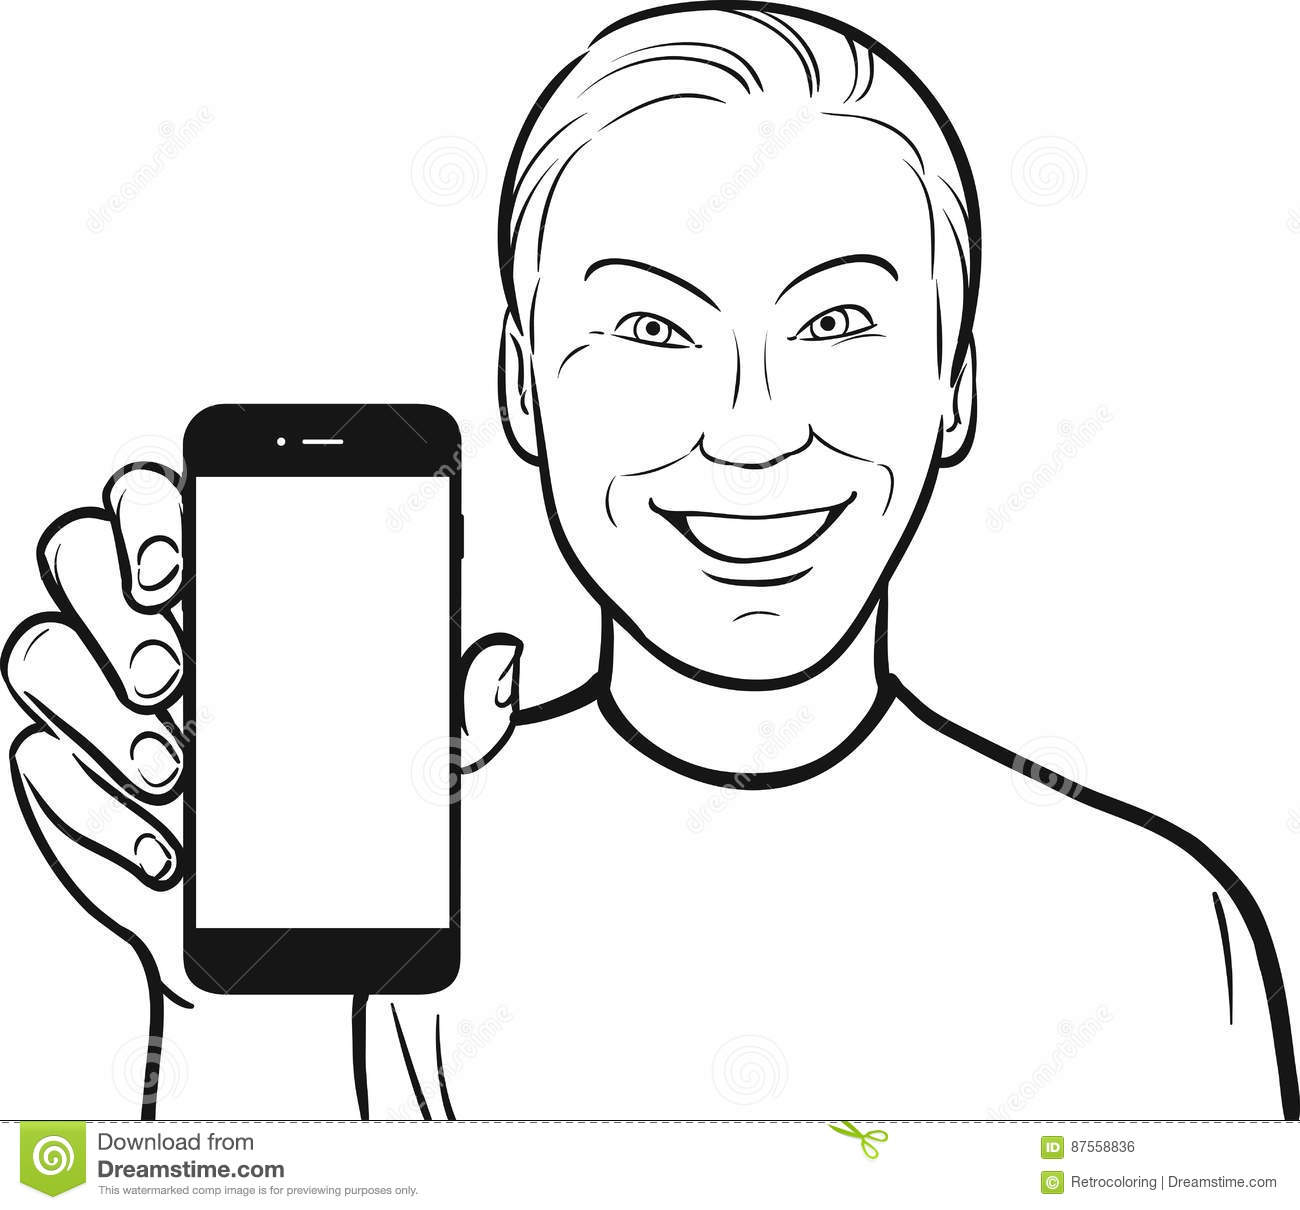 Line Drawing Game App : Line drawing of a korean man showing mobile app on